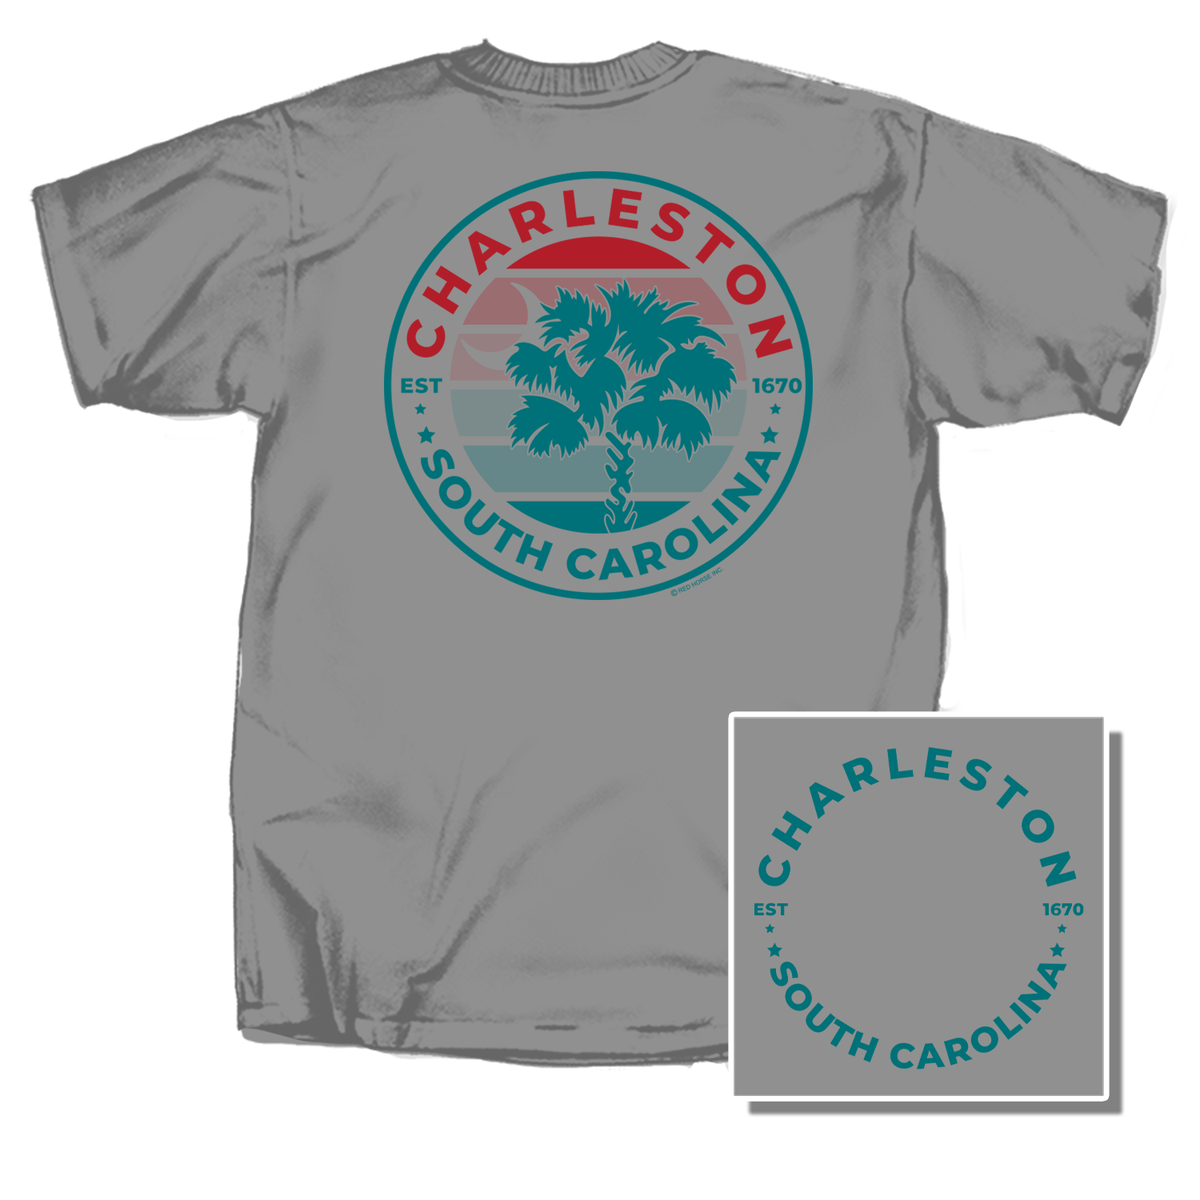 Charleston Coast Short Sleeve T-Shirt